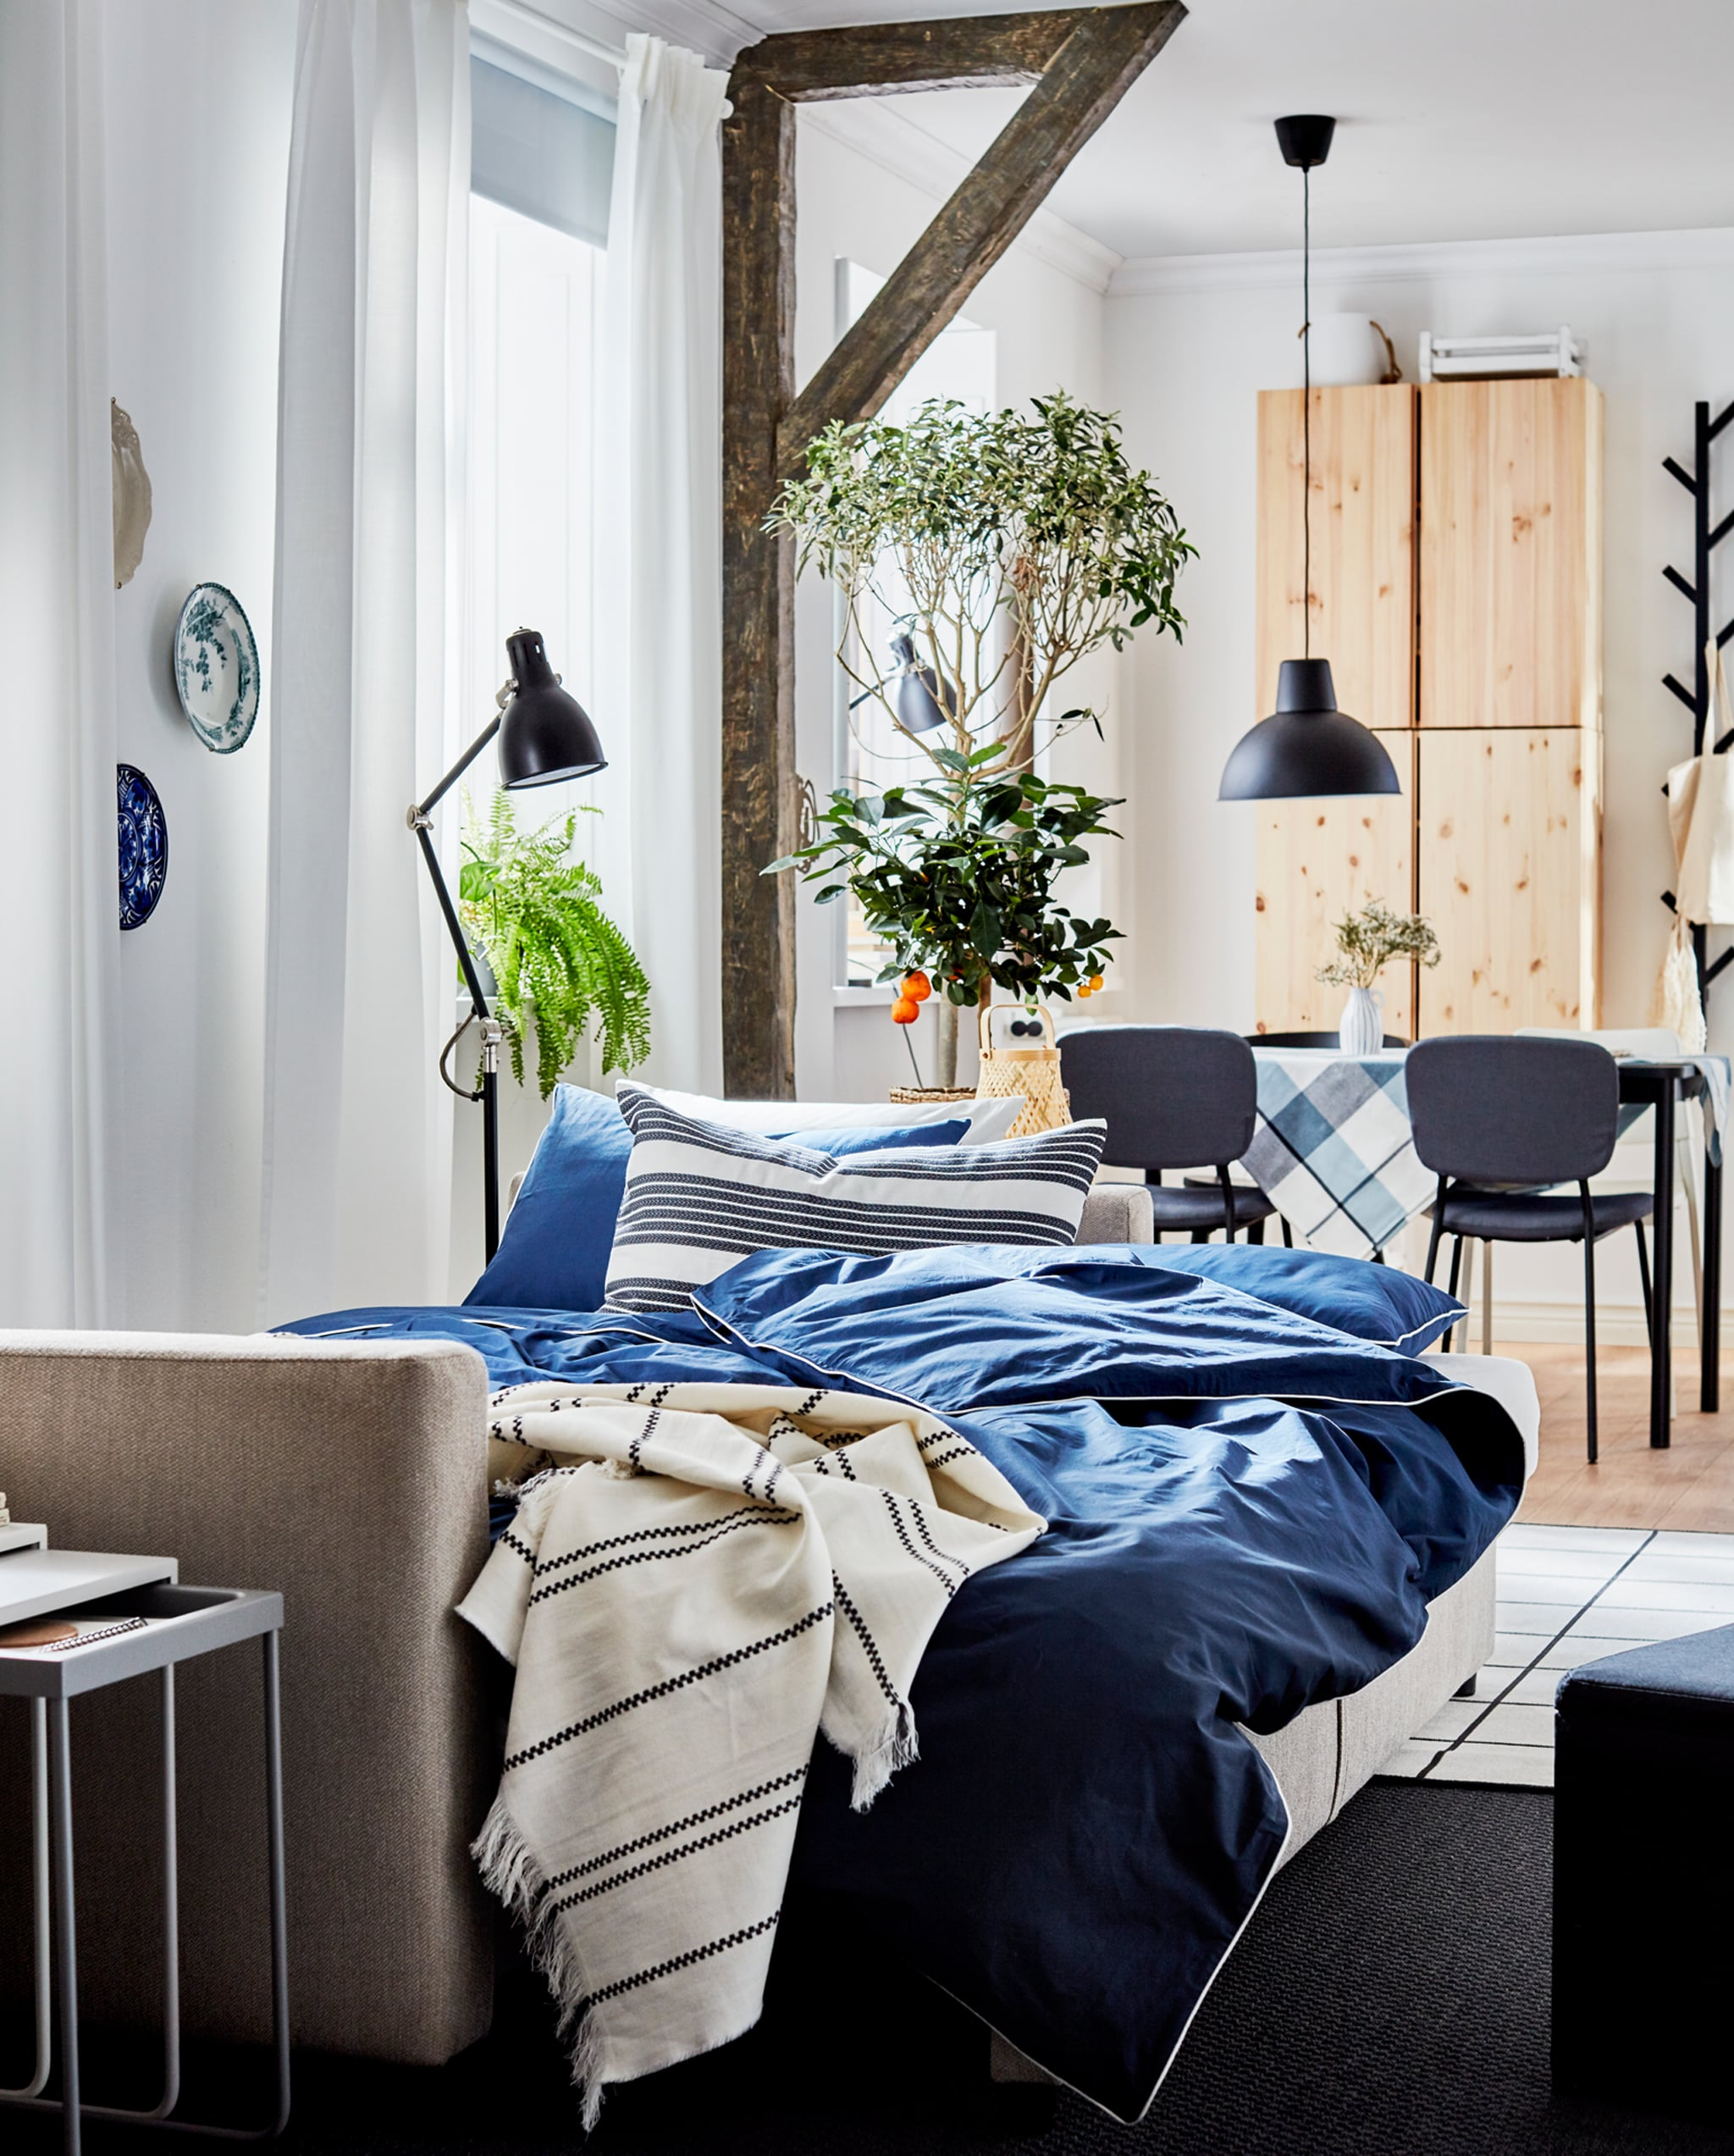 10 Home Deco Tricks I Ve Learned From The New Ikea 2021 Catalogue Daily Dream Decor